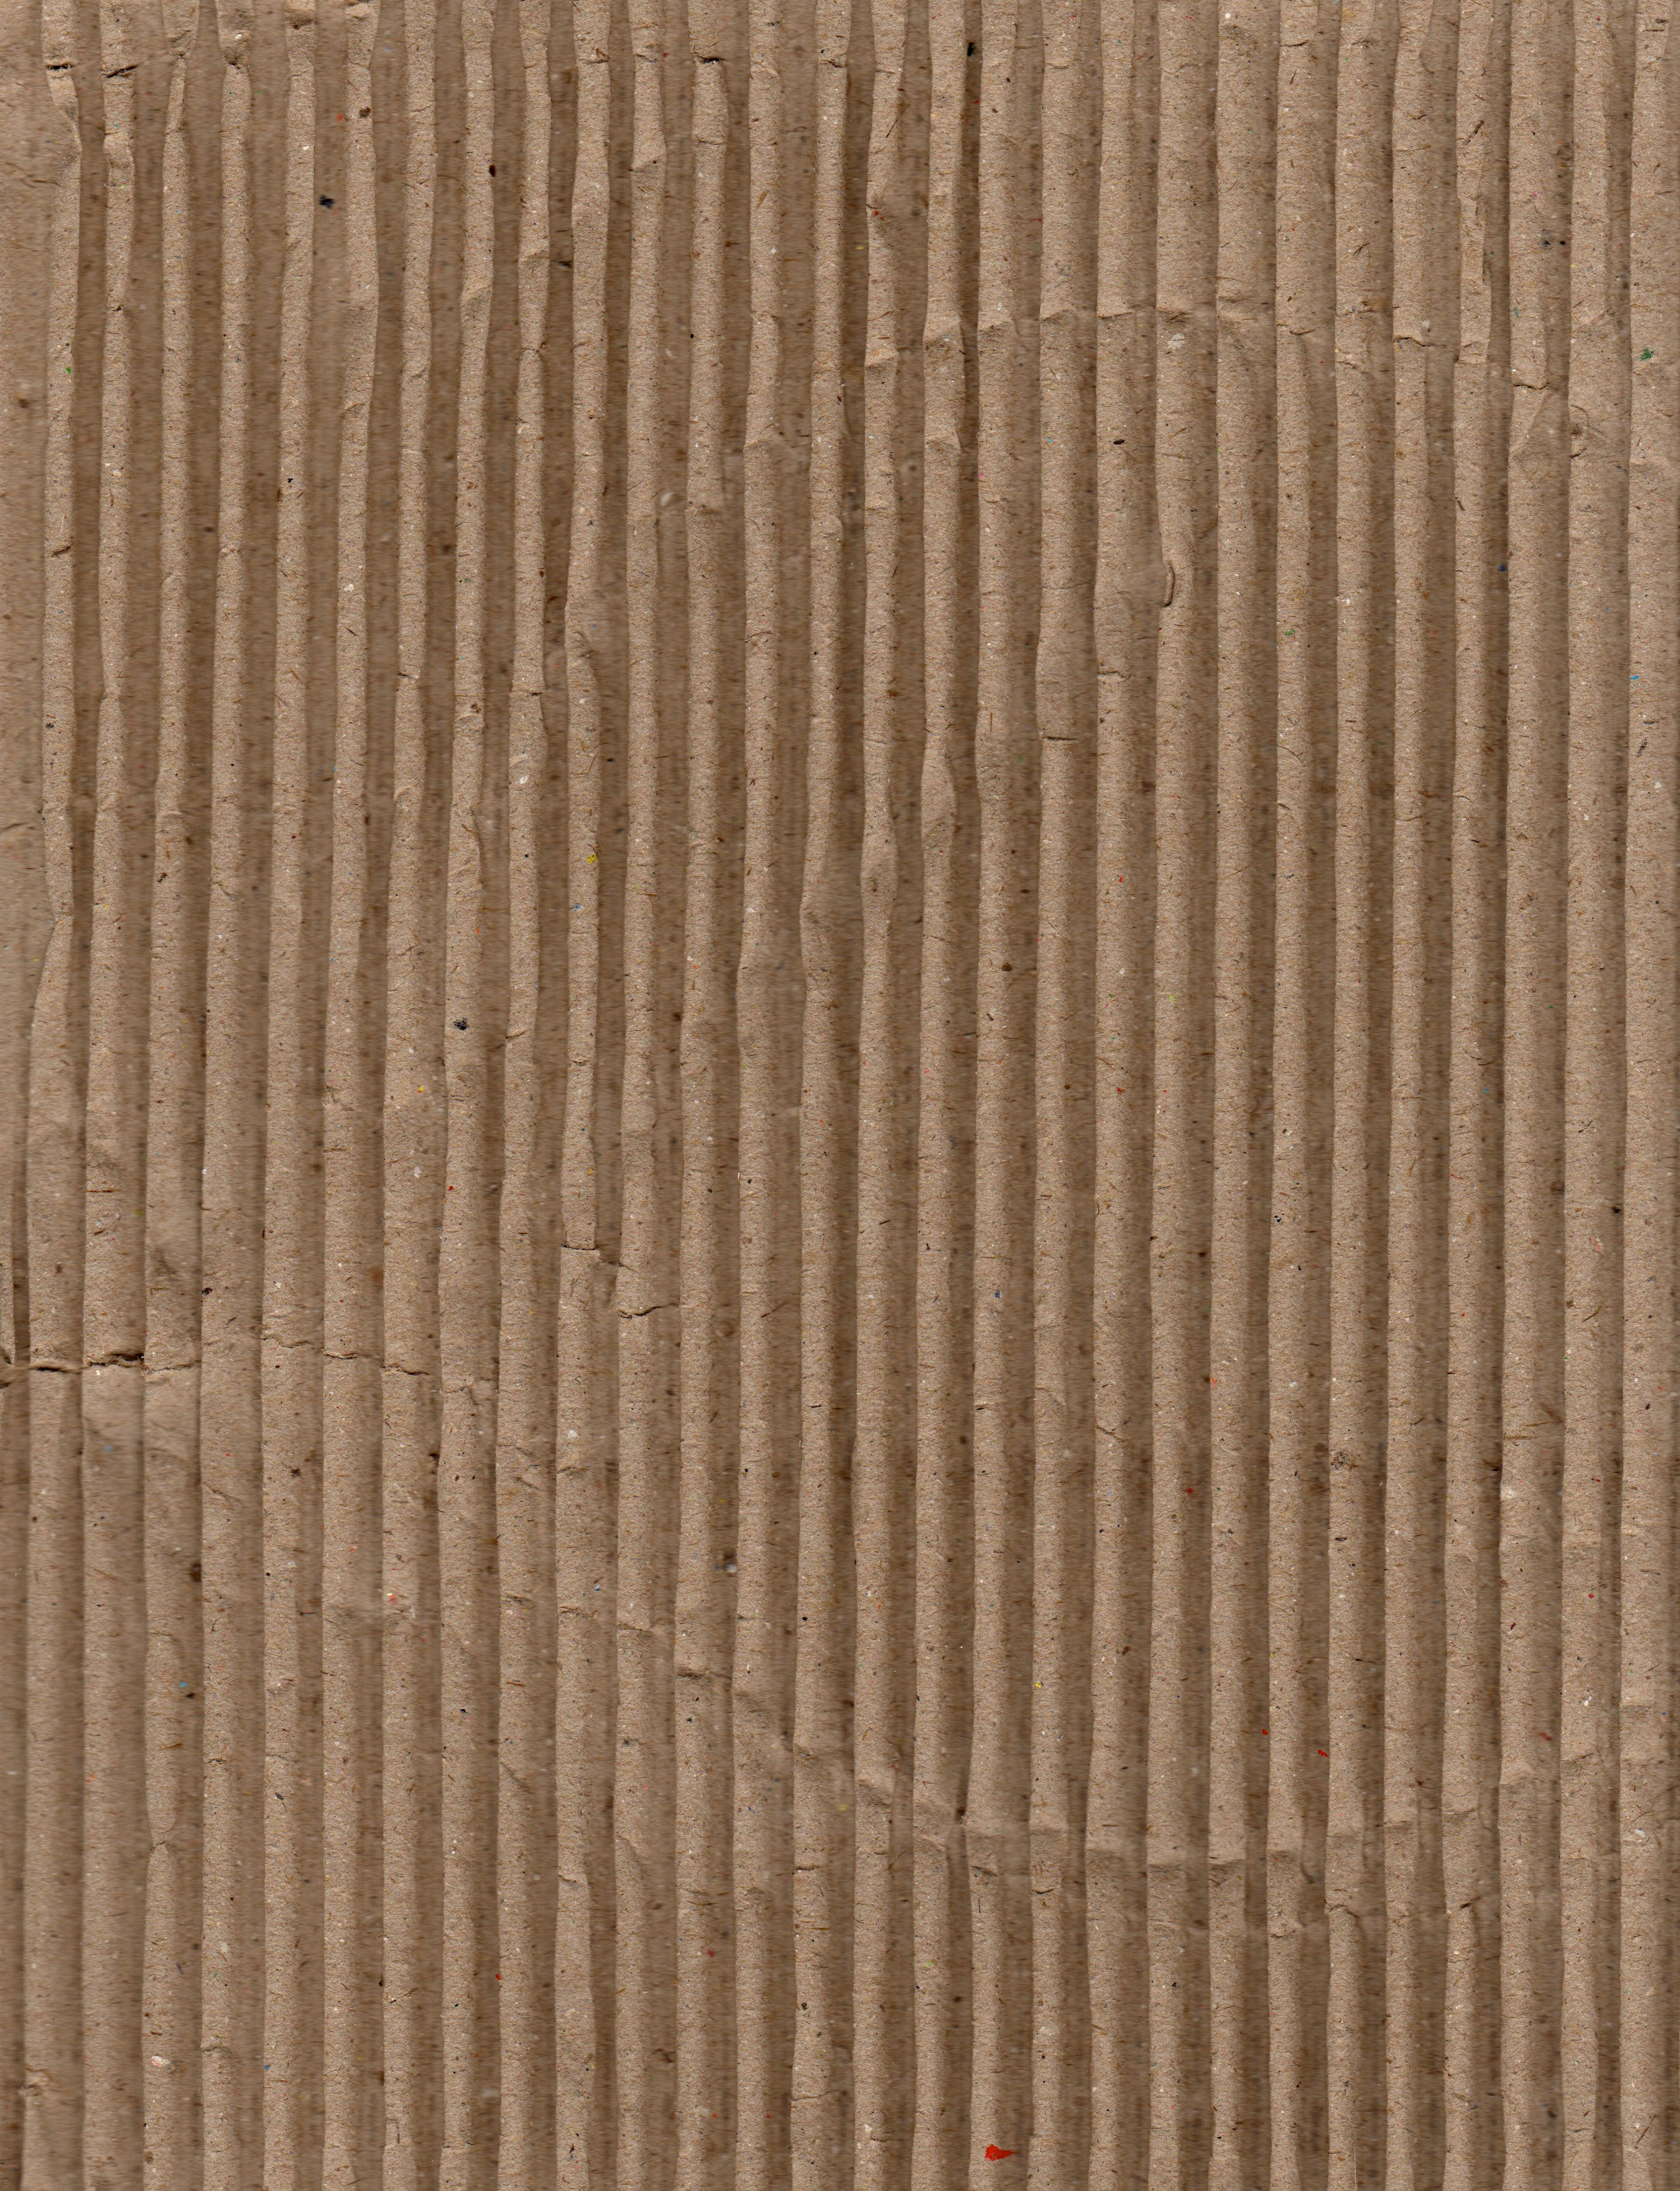 lost and taken cardboard texture